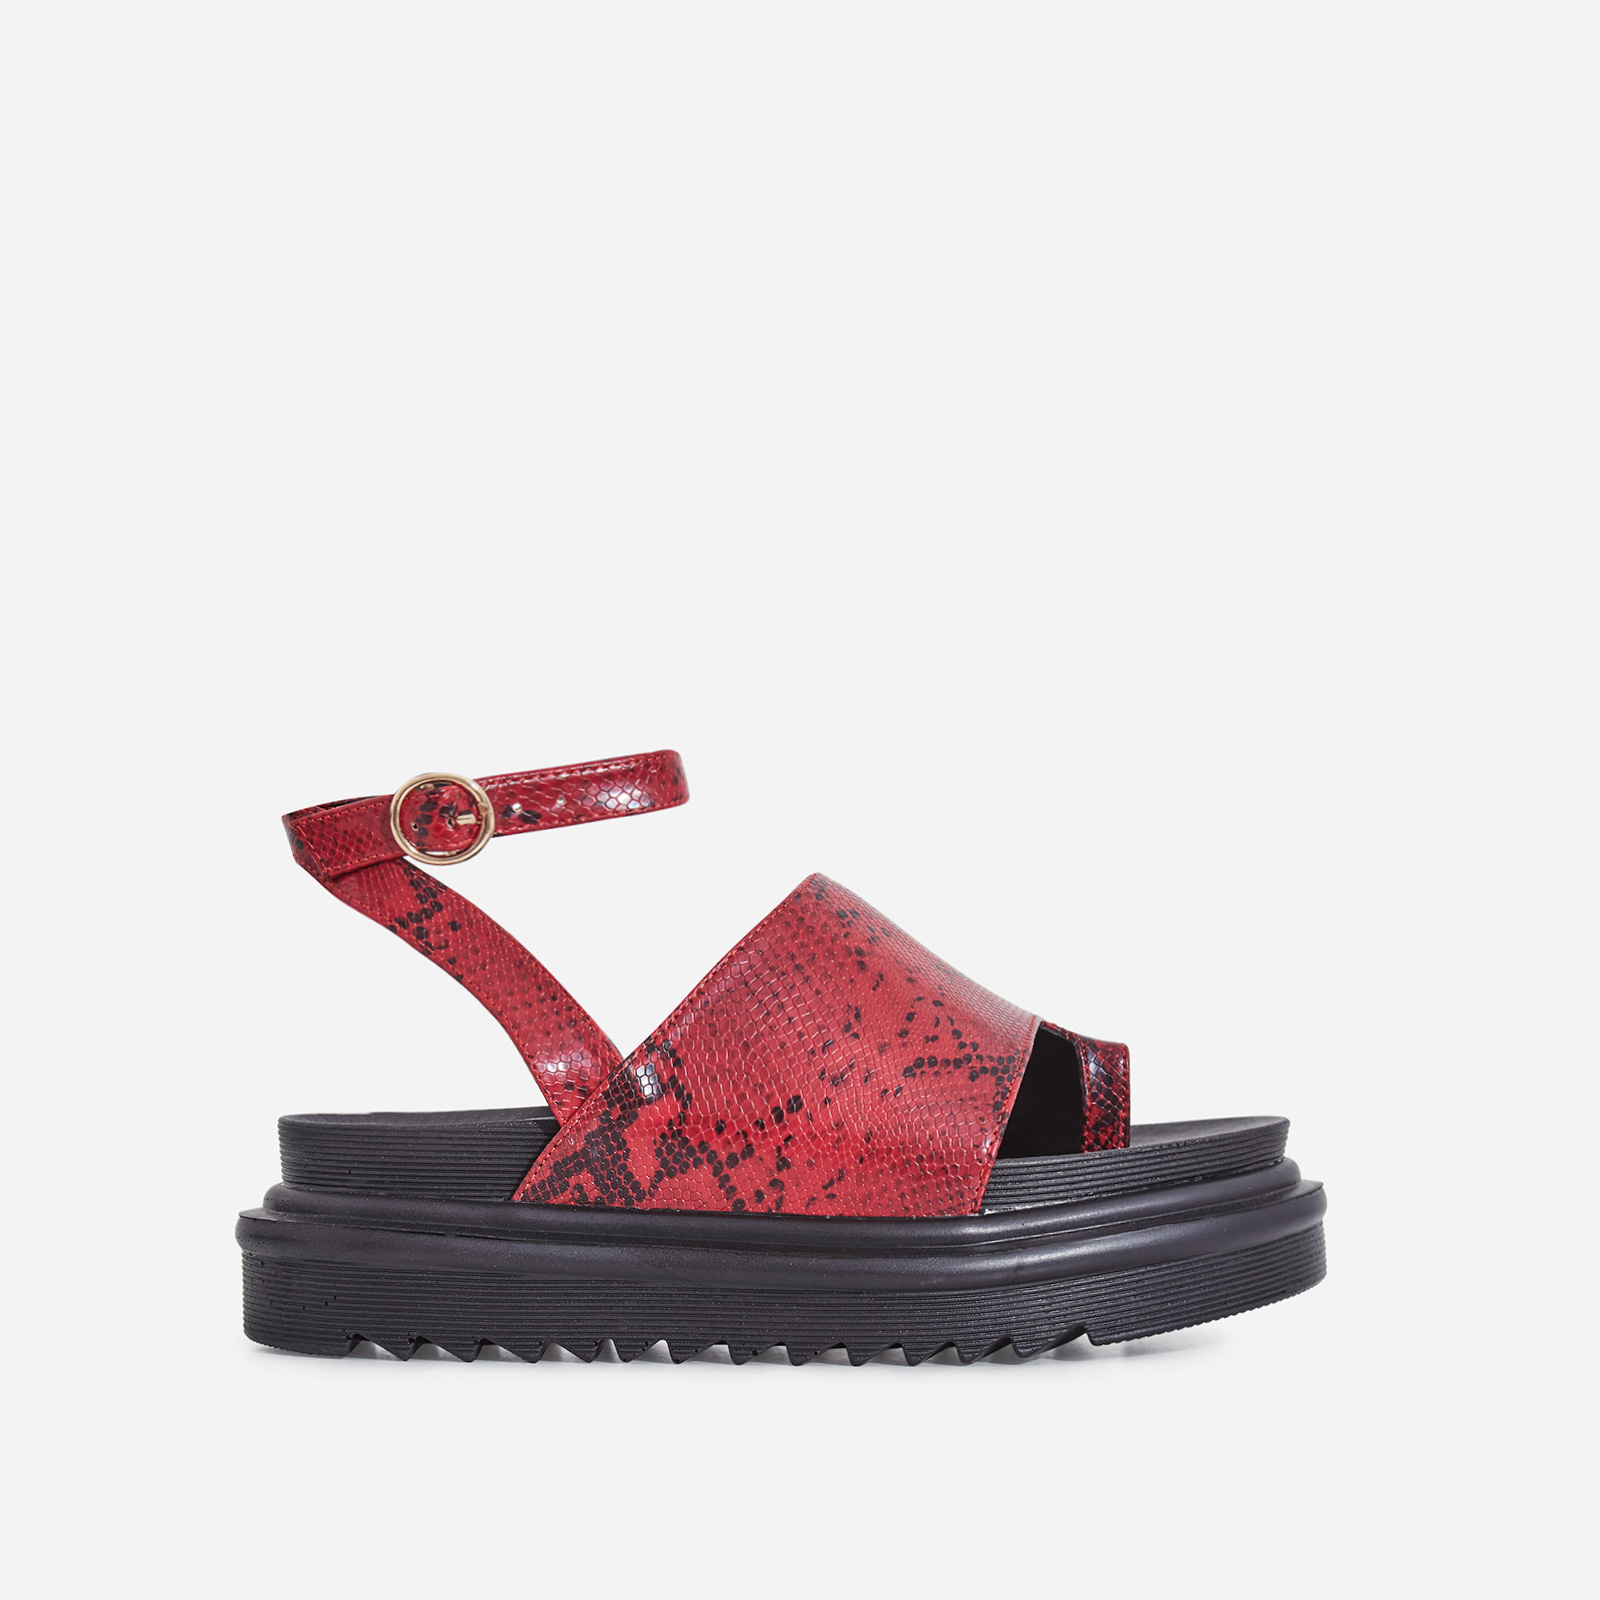 Ruth Chunky Sole Sandal In Burgundy Snake Print Faux Leather